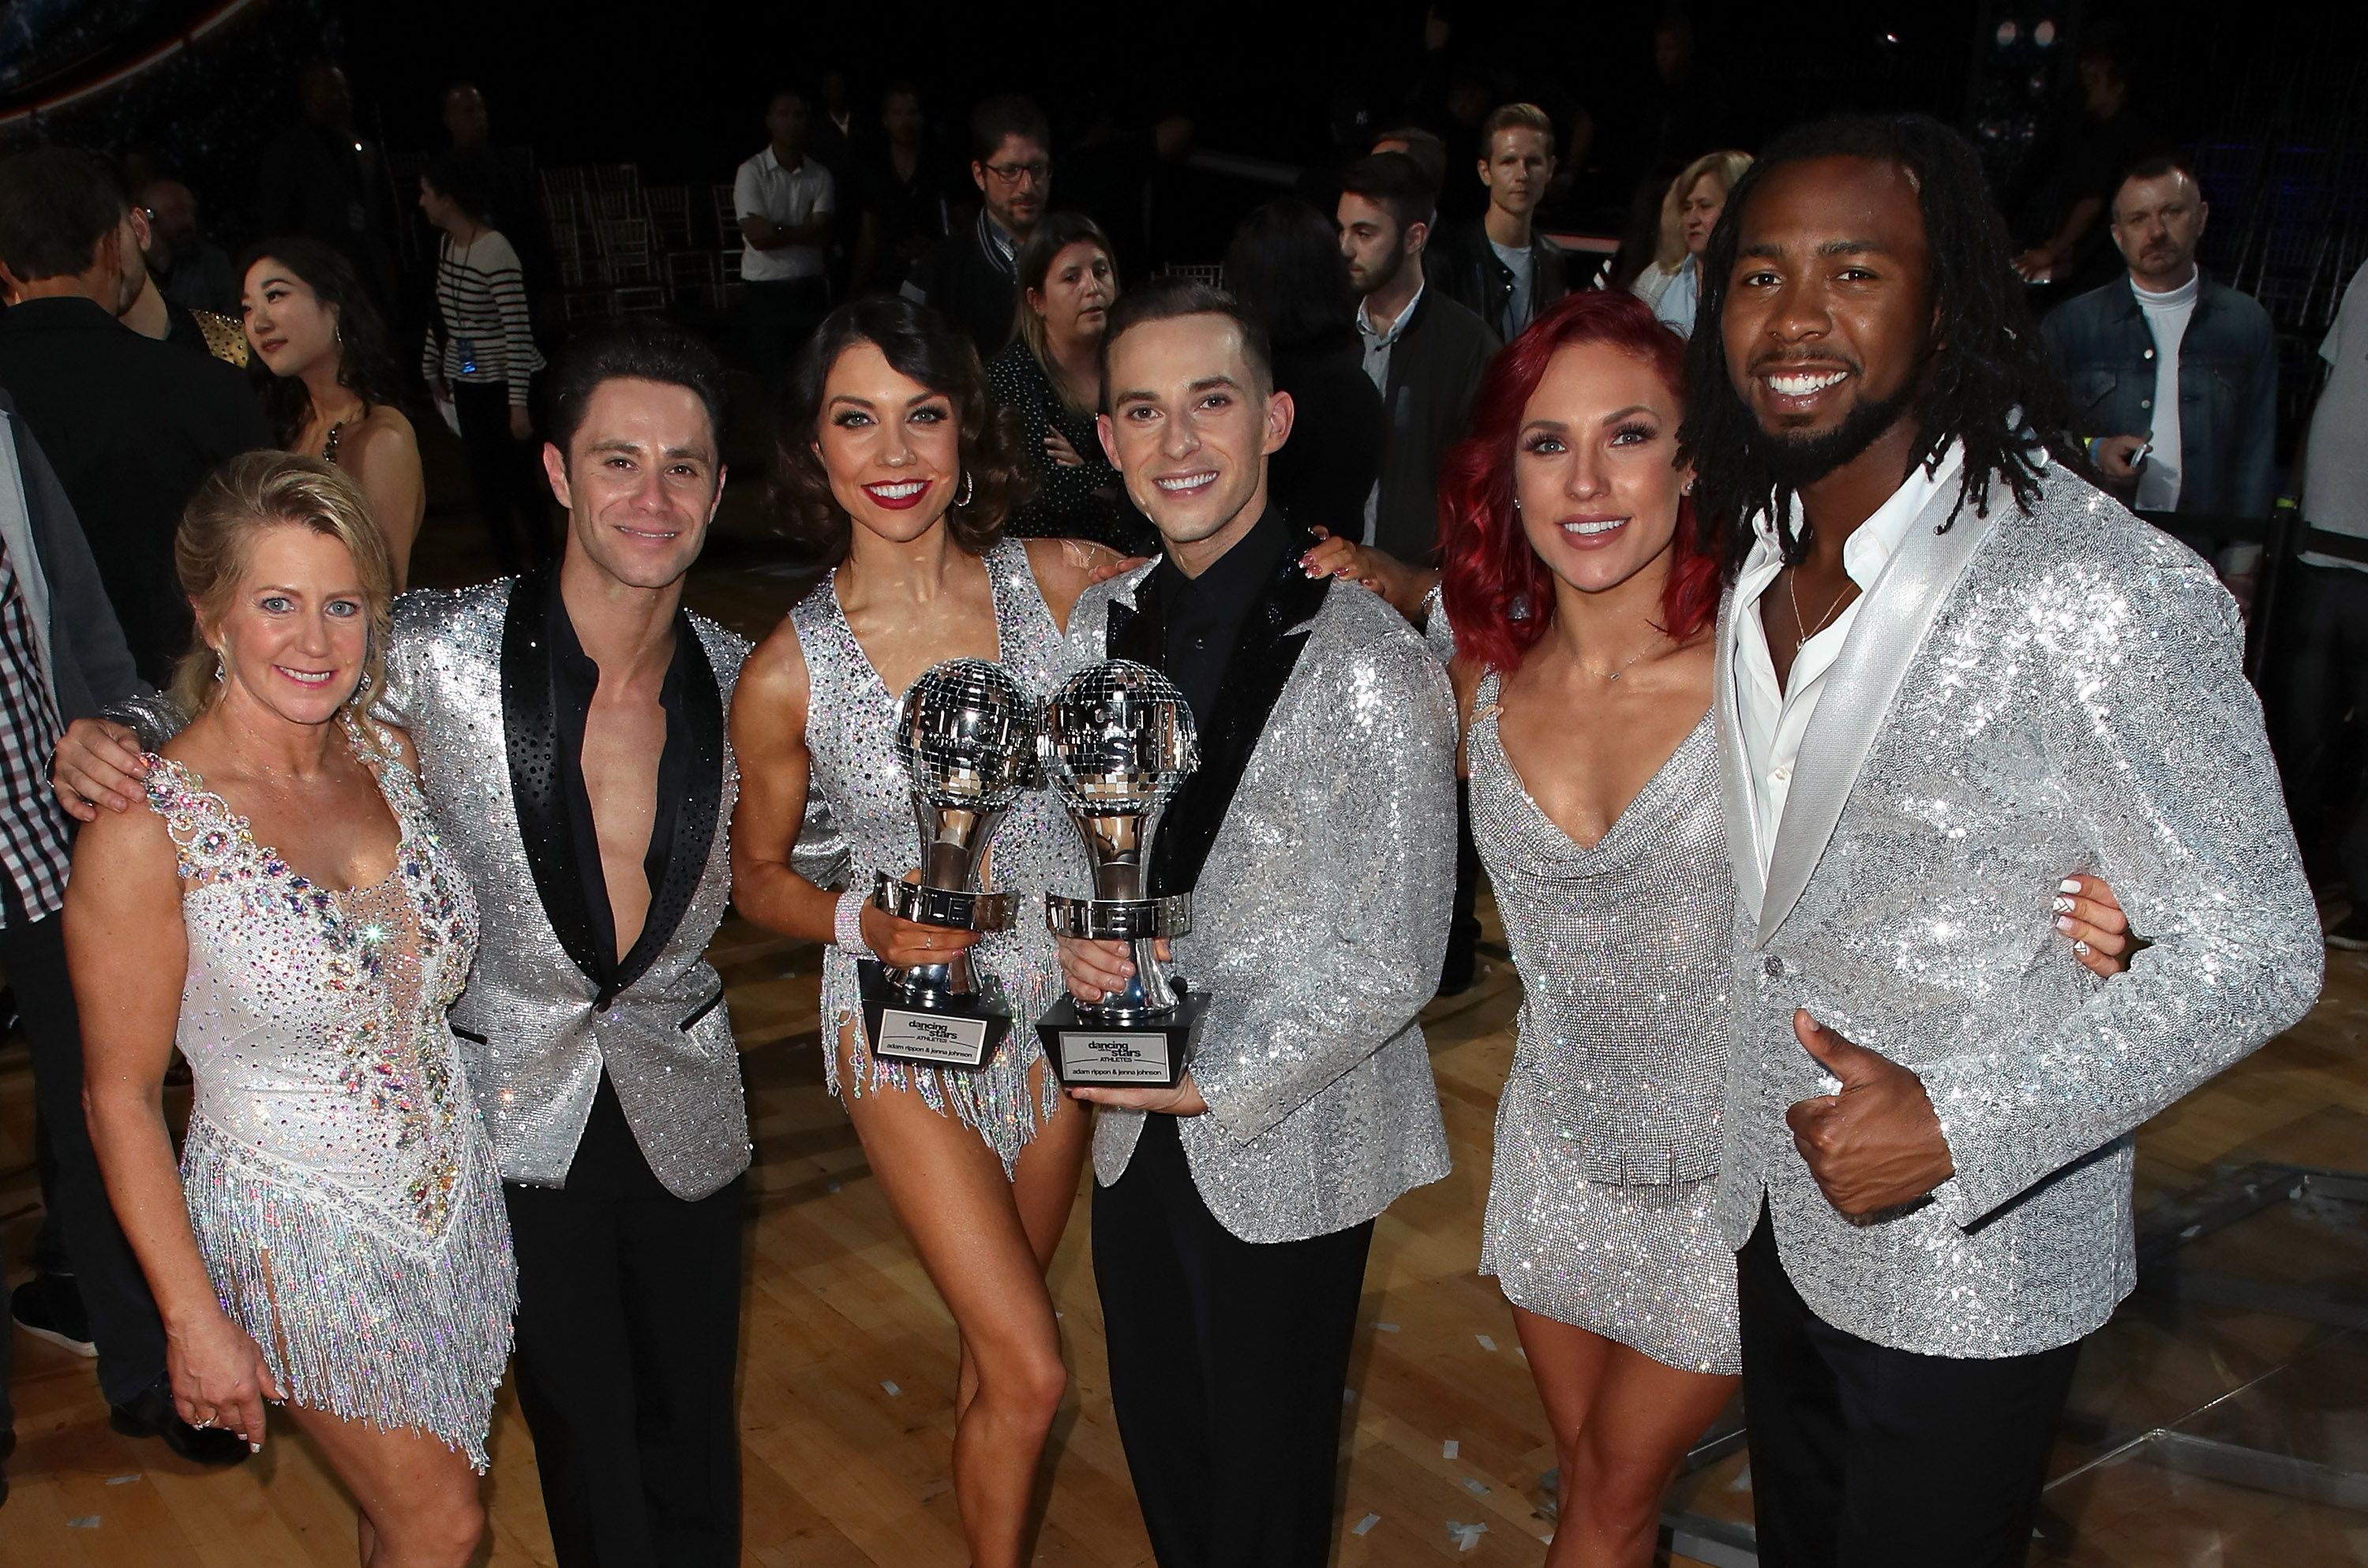 The Pro Dancers of season 26 of Dancing With Stars at the finale in Los Angeles, California on May 21, 2018. | Photo: Getty Images